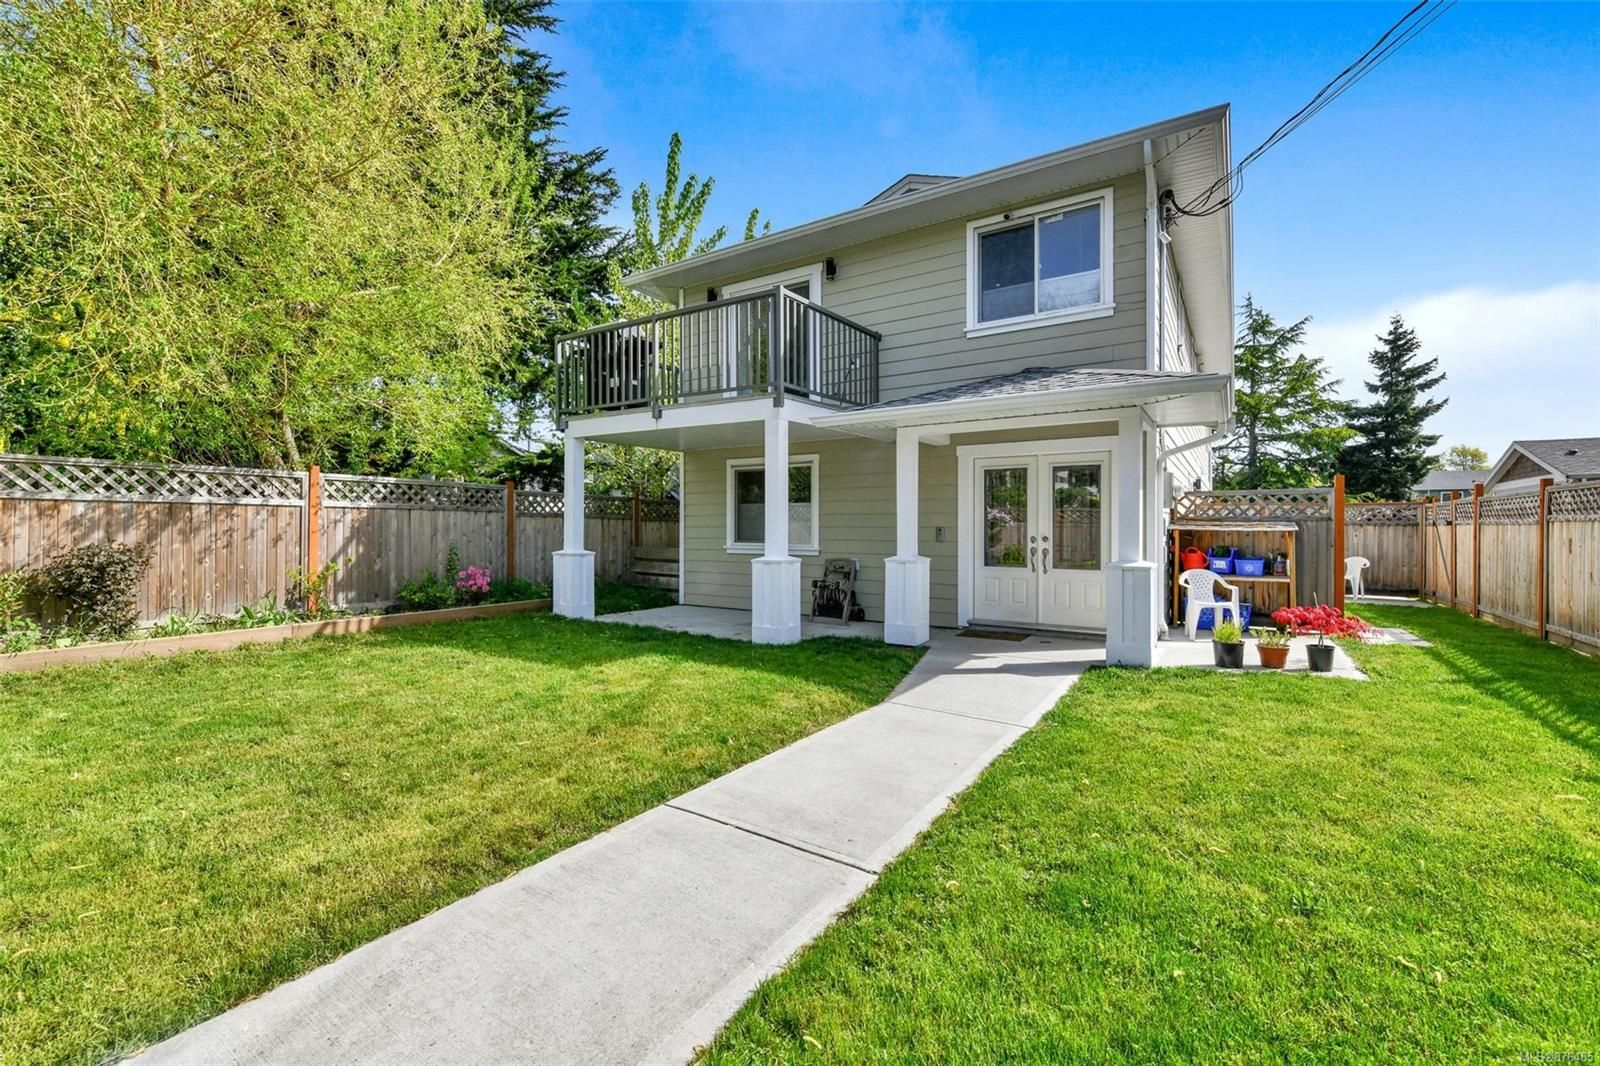 Main Photo: 2919 Doncaster Dr in Victoria: Vi Oaklands House for sale : MLS®# 876485